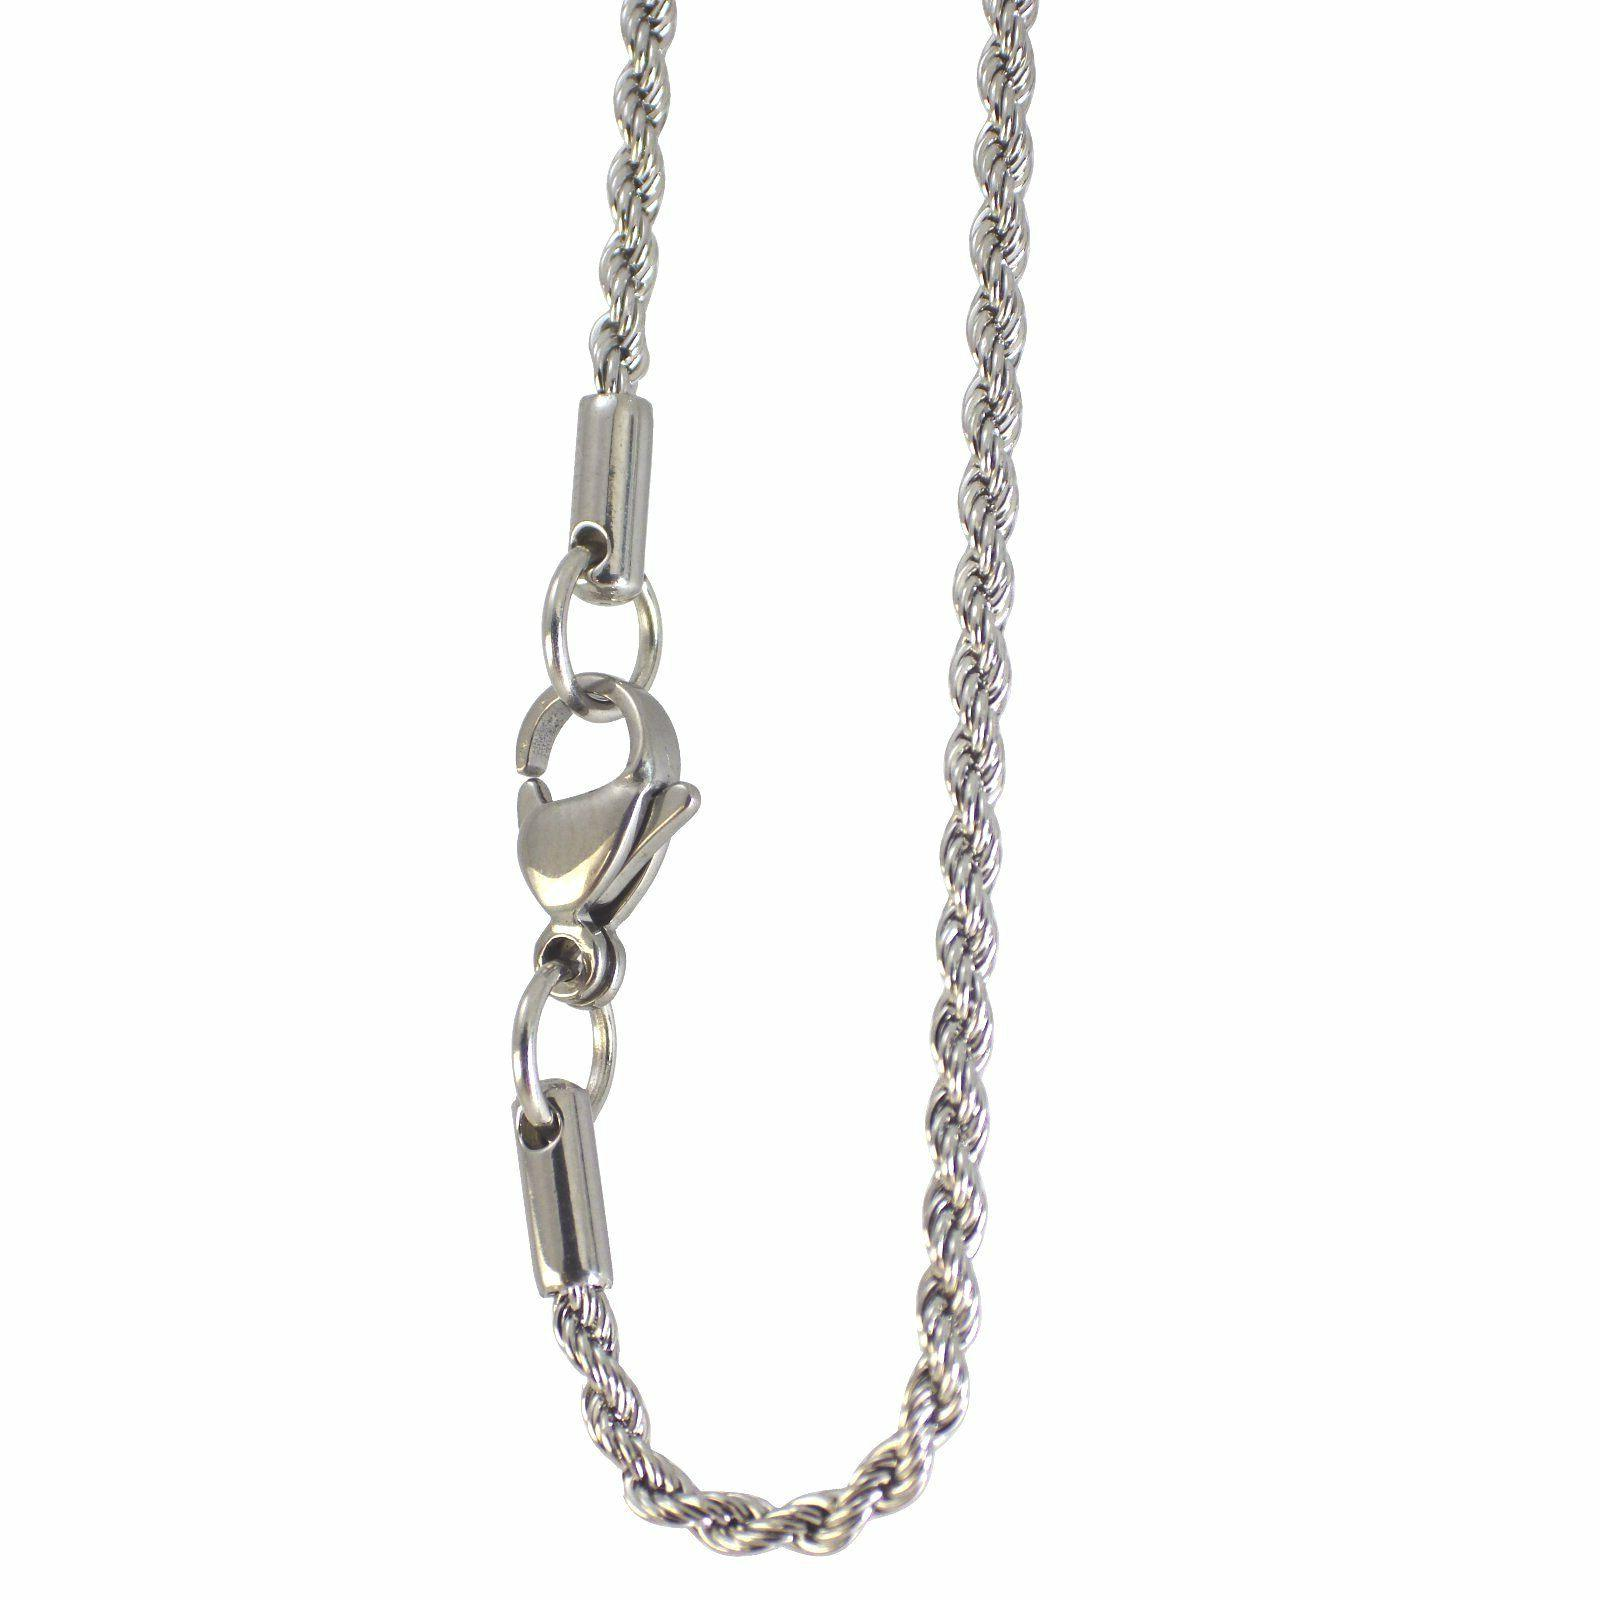 Rope Chain Necklace Surgical Stainless Steel 2mm 16-24 Inch